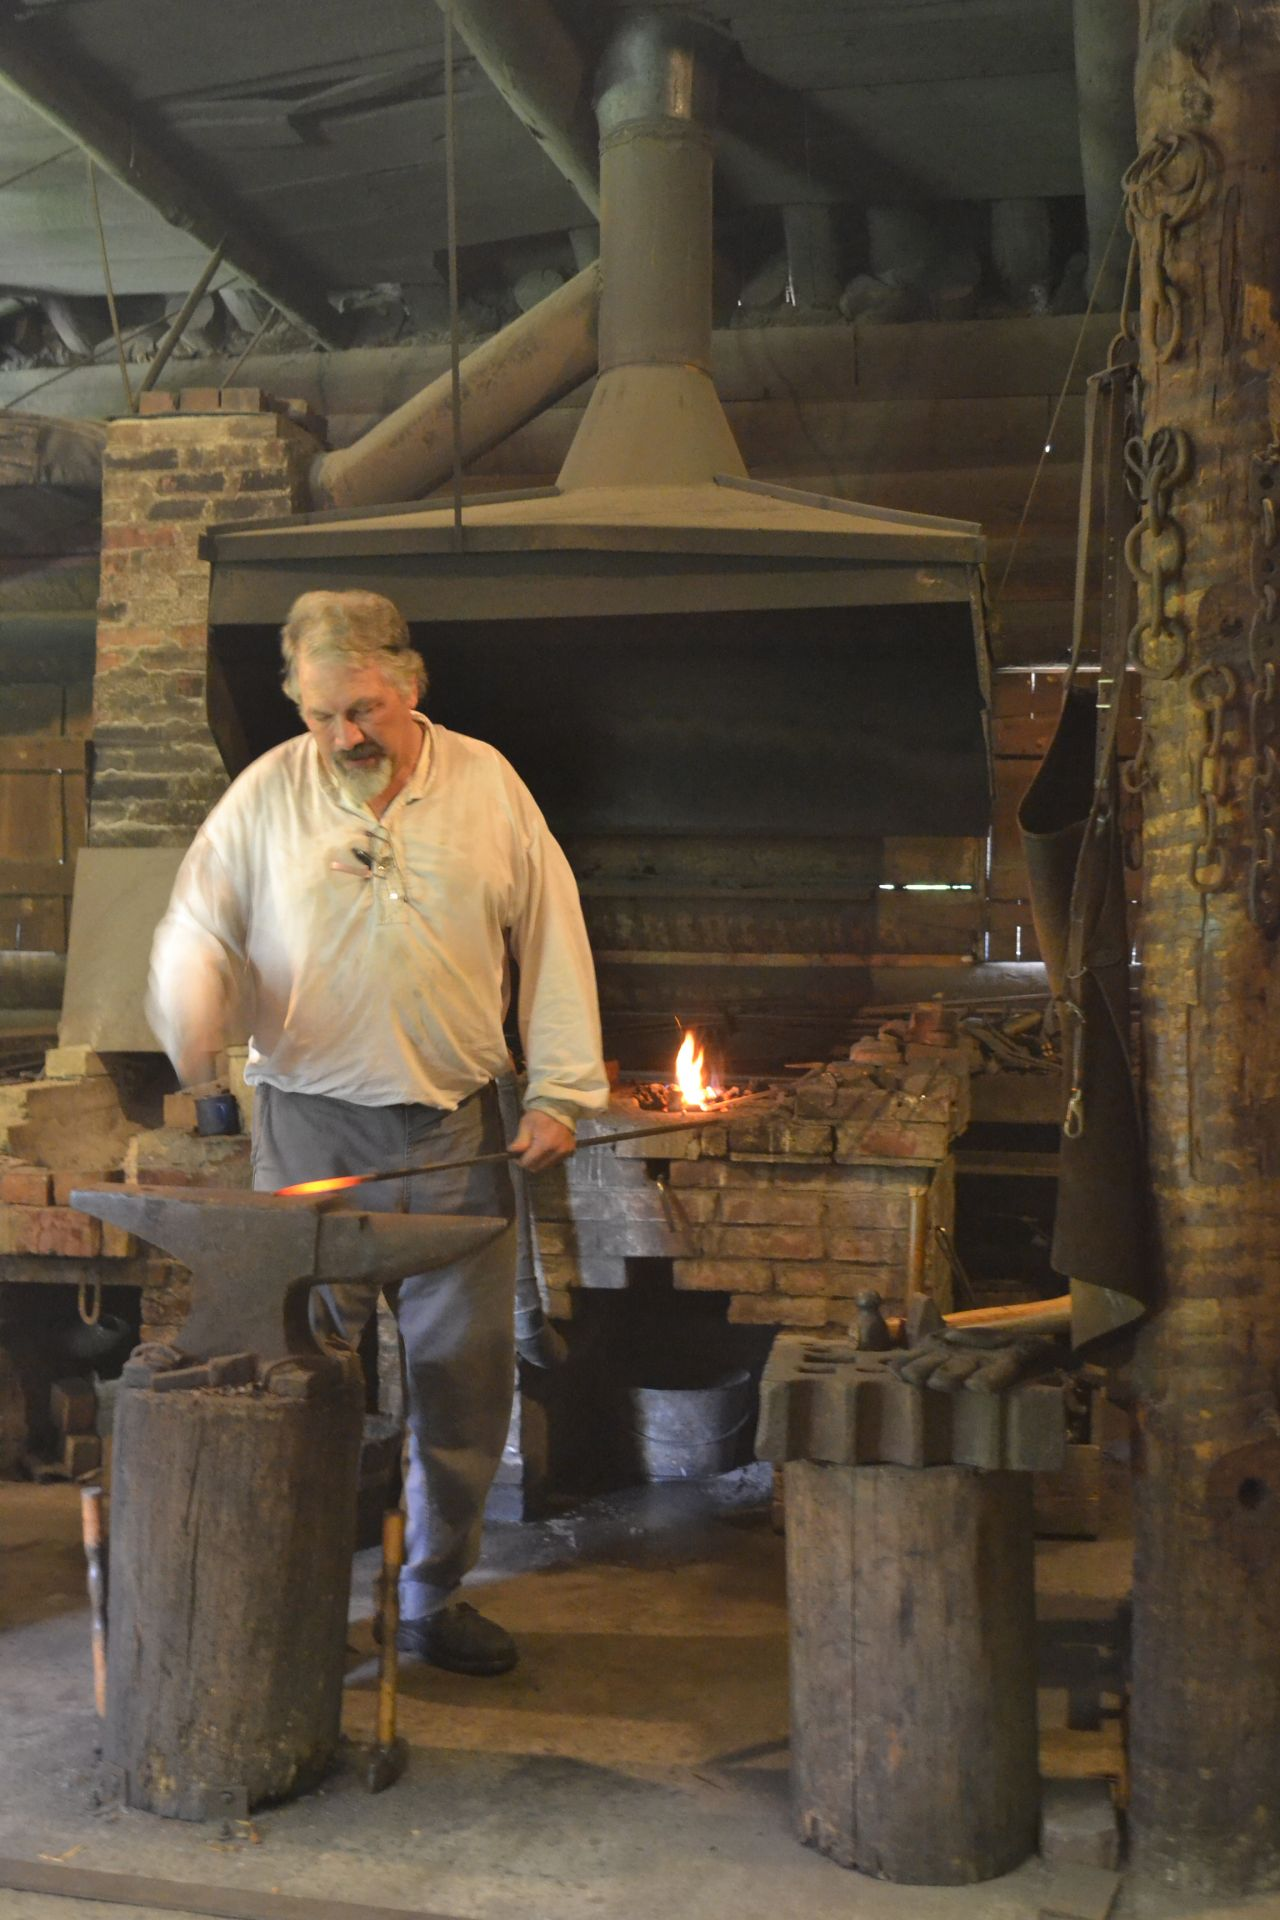 A blacksmith in Historic Washington State Park forges a Bowie knife.